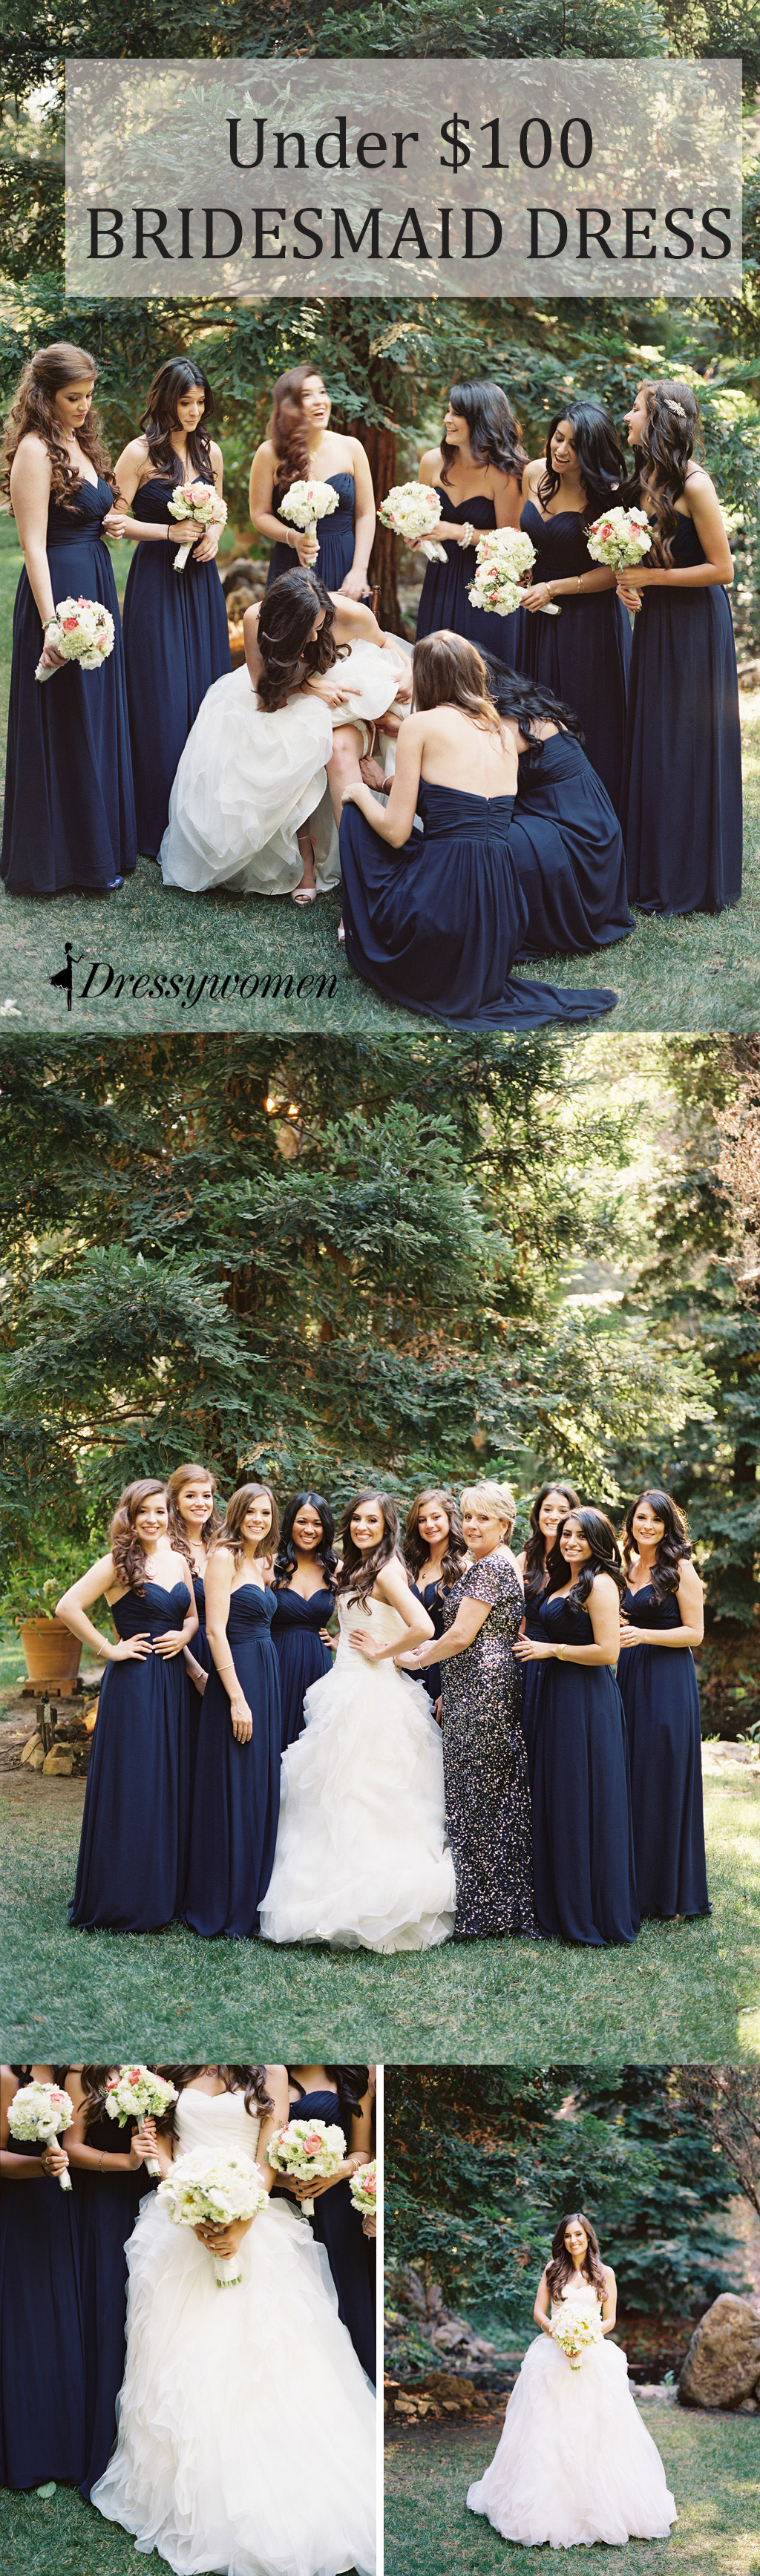 2016 navy strapless long chiffon bridesmaid dresses cheap 2016 navy strapless long chiffon bridesmaid dresses cheap bridesmaid dresses under 100 ombrellifo Image collections